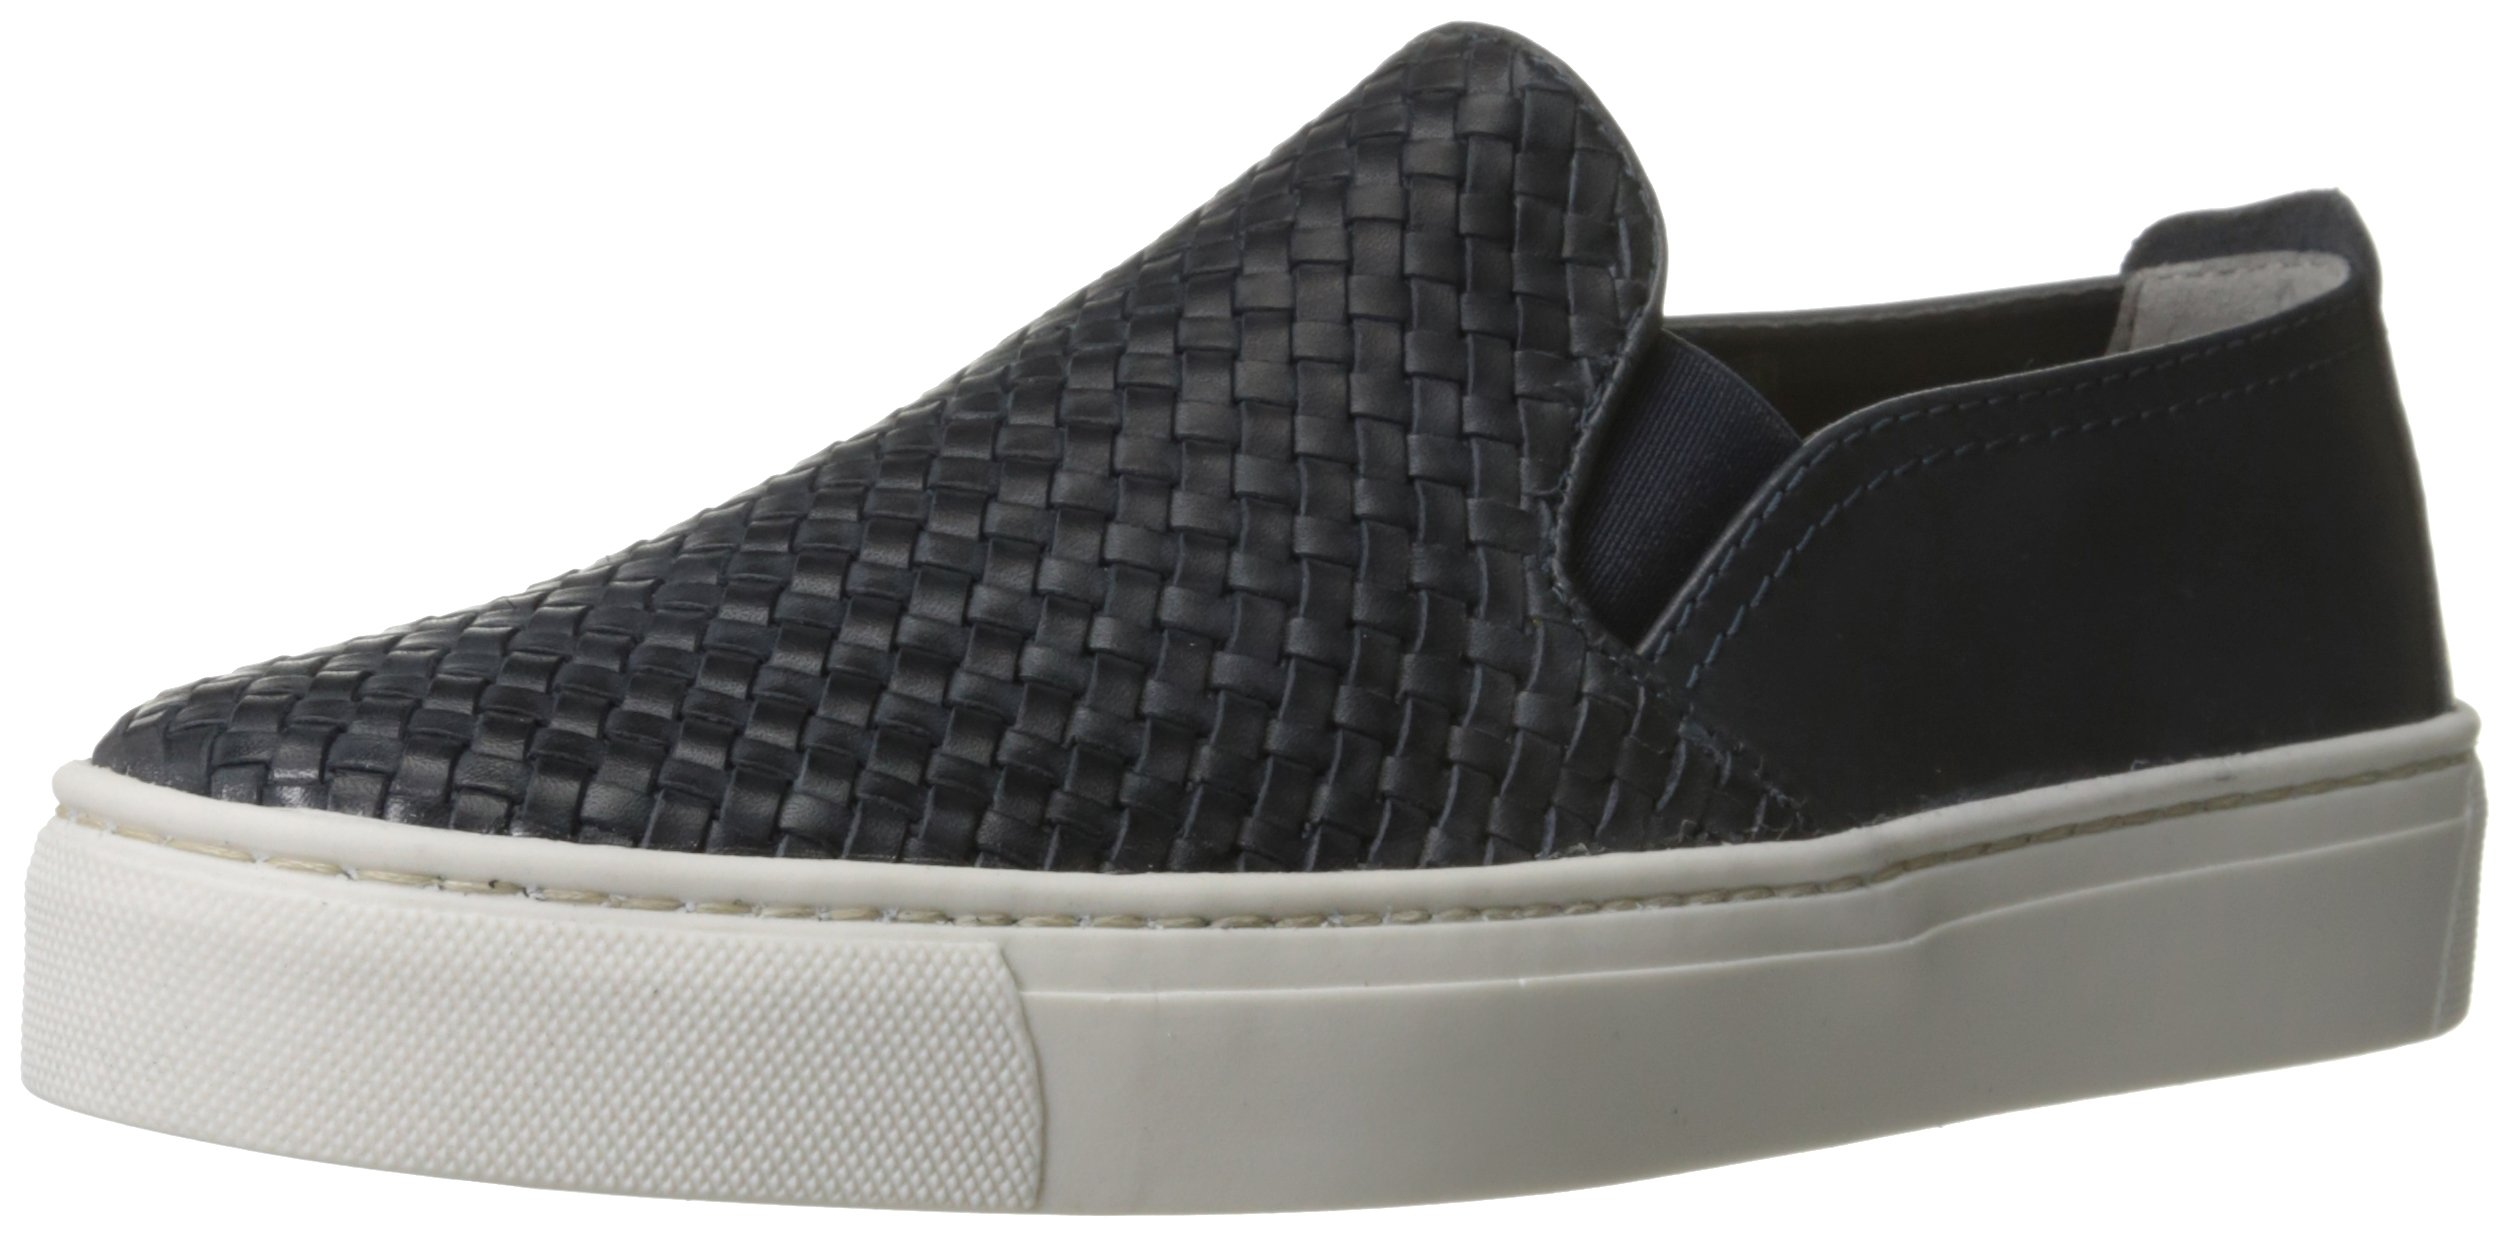 The Flexx Women's Sneak Name Fashion Sneaker, Navy Elba Intreccio, 9 M US